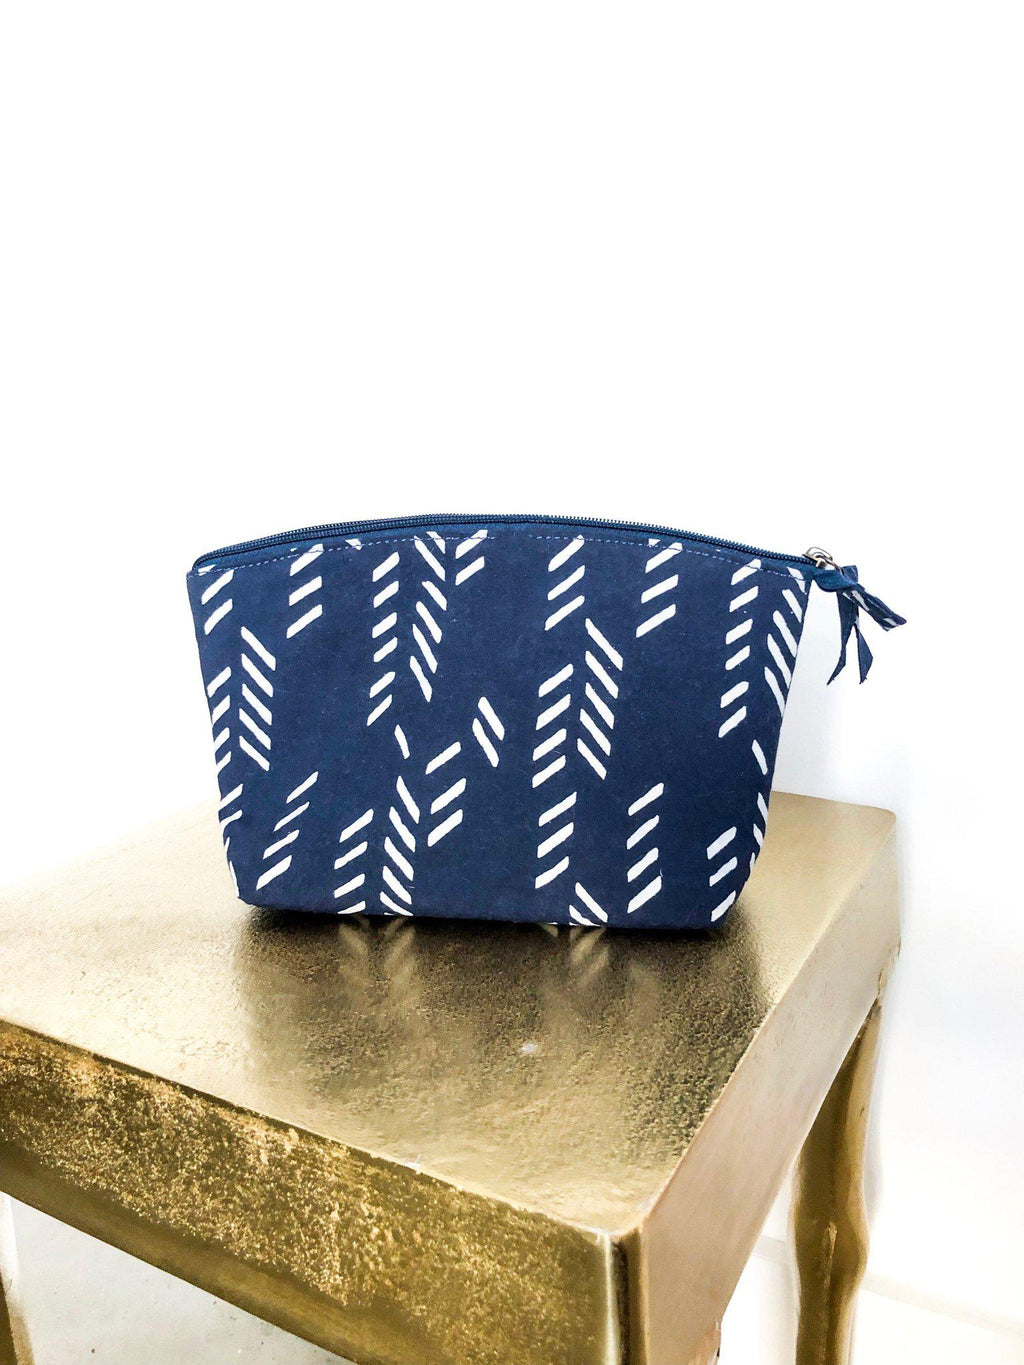 Art Deco/Stylized Feather Makeup Bag in Navy & Cream